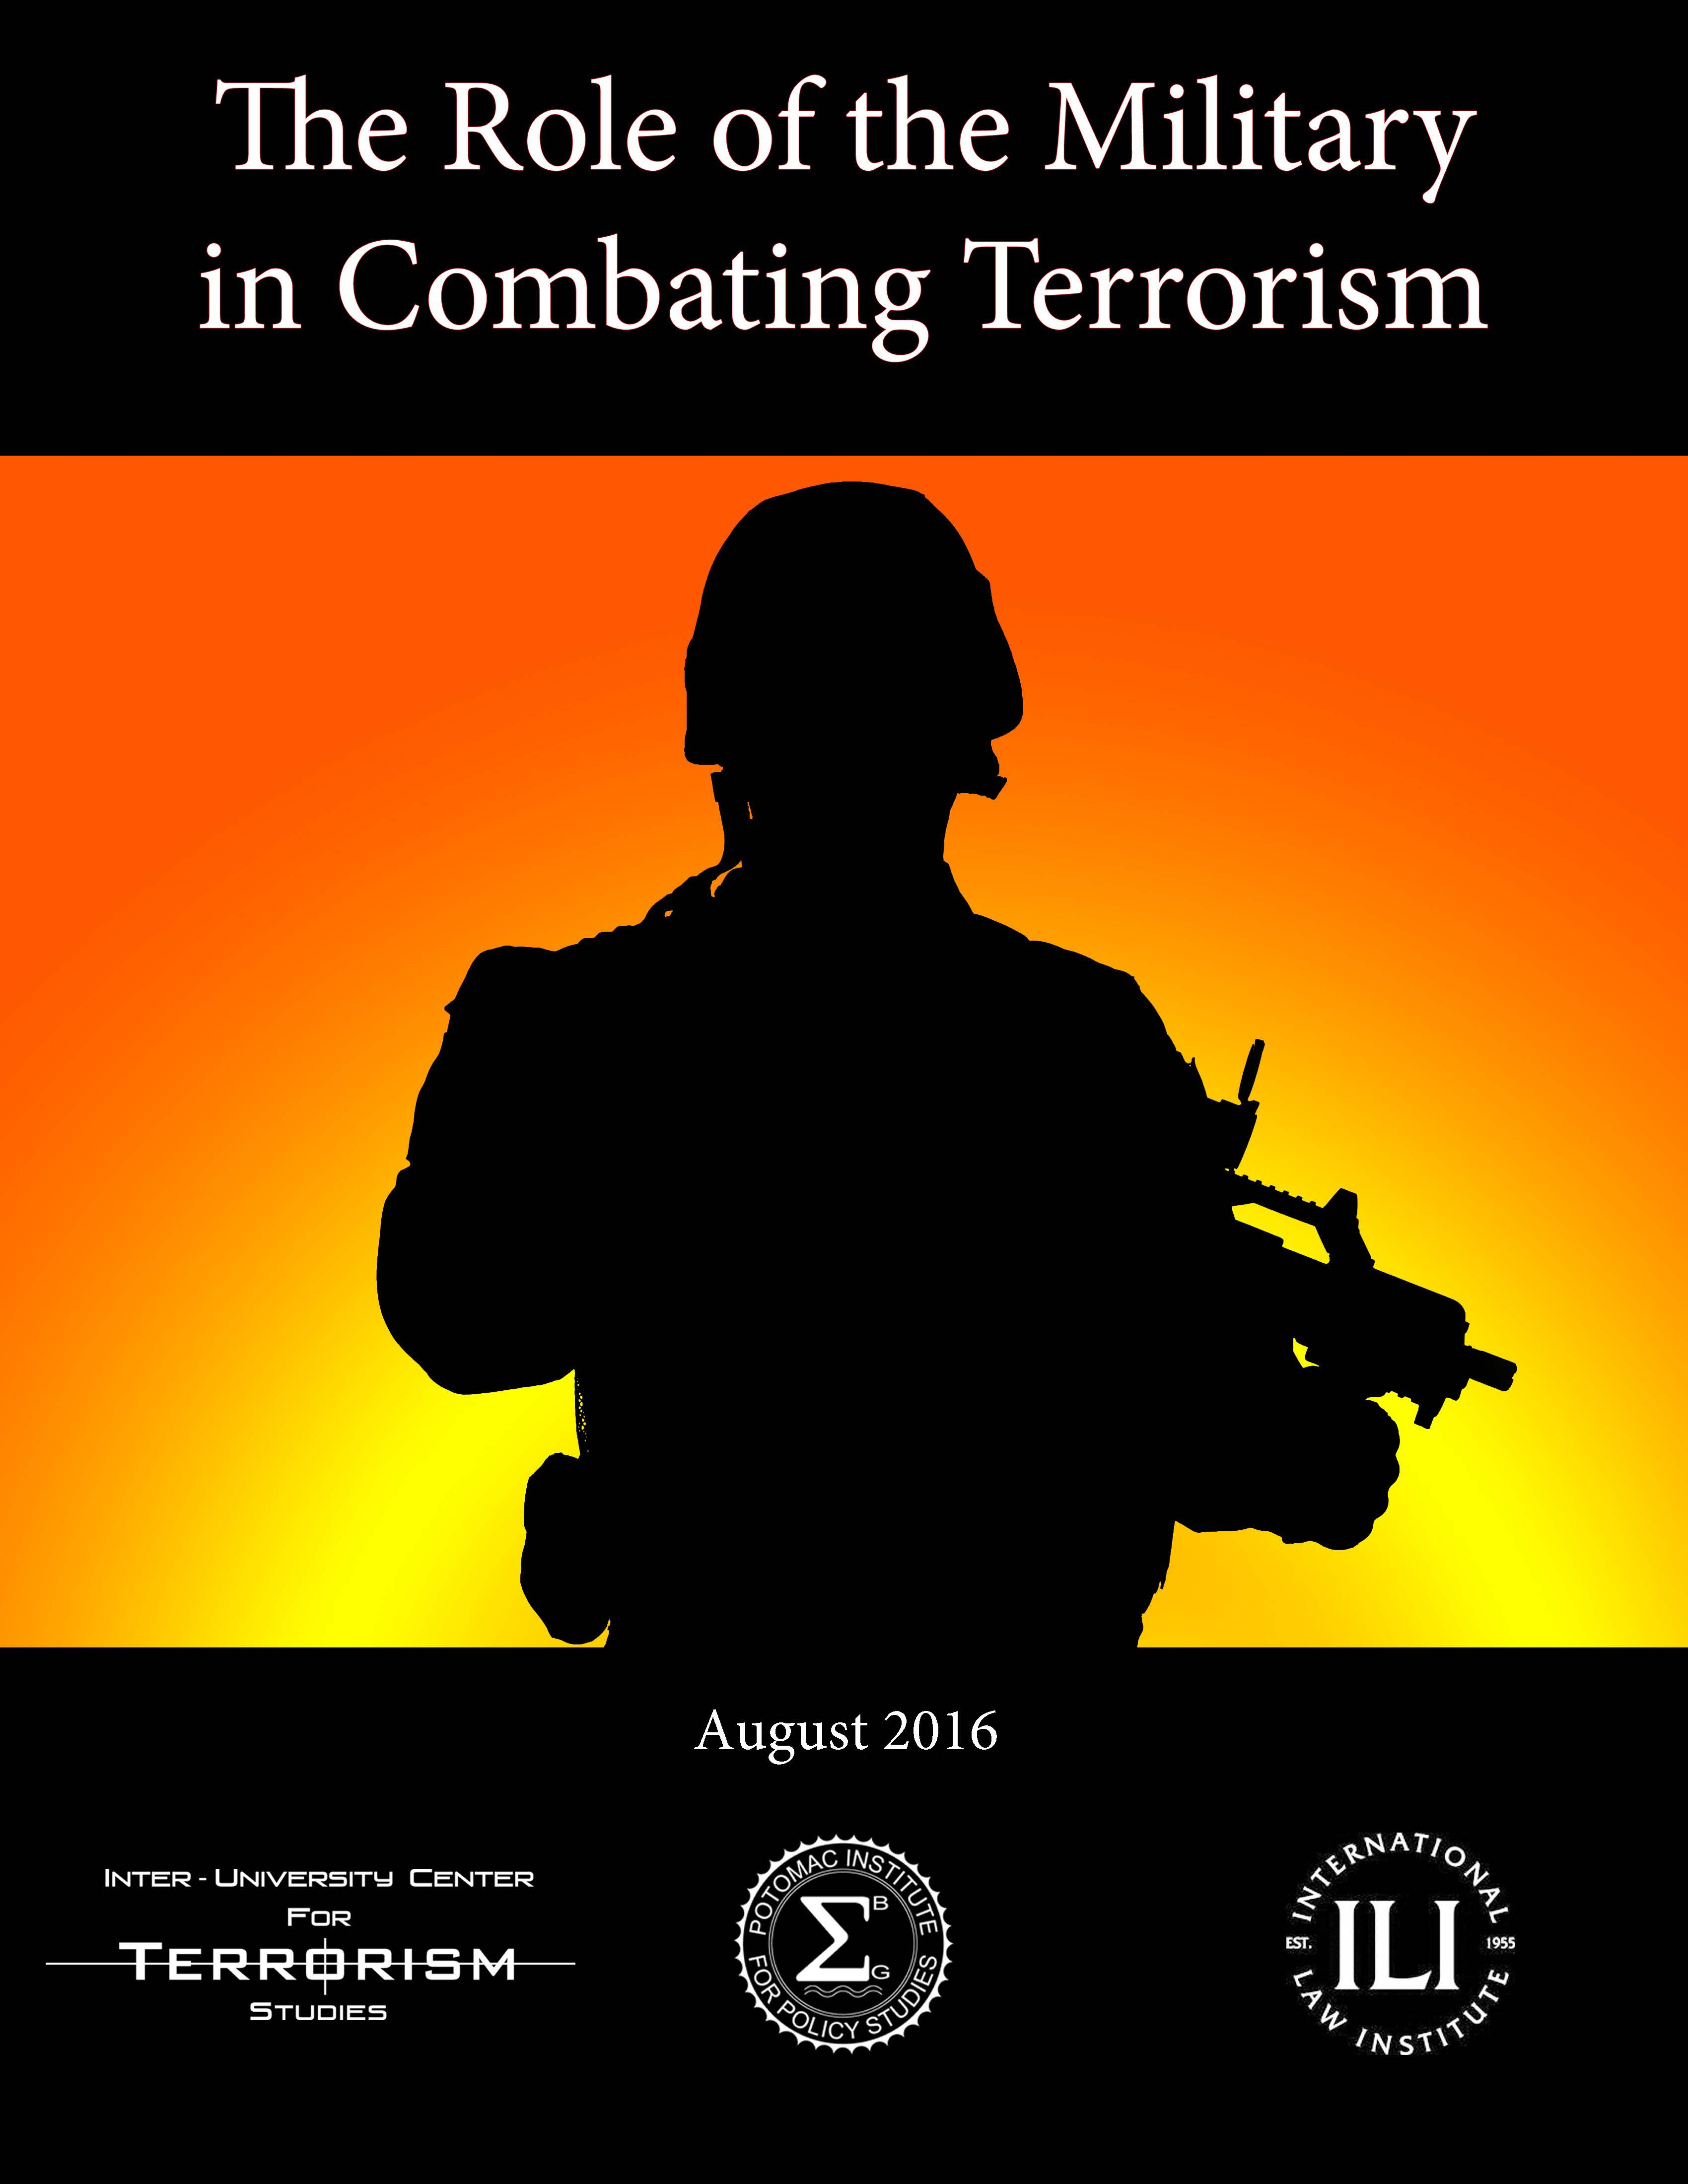 Combating essay in role student terrorism